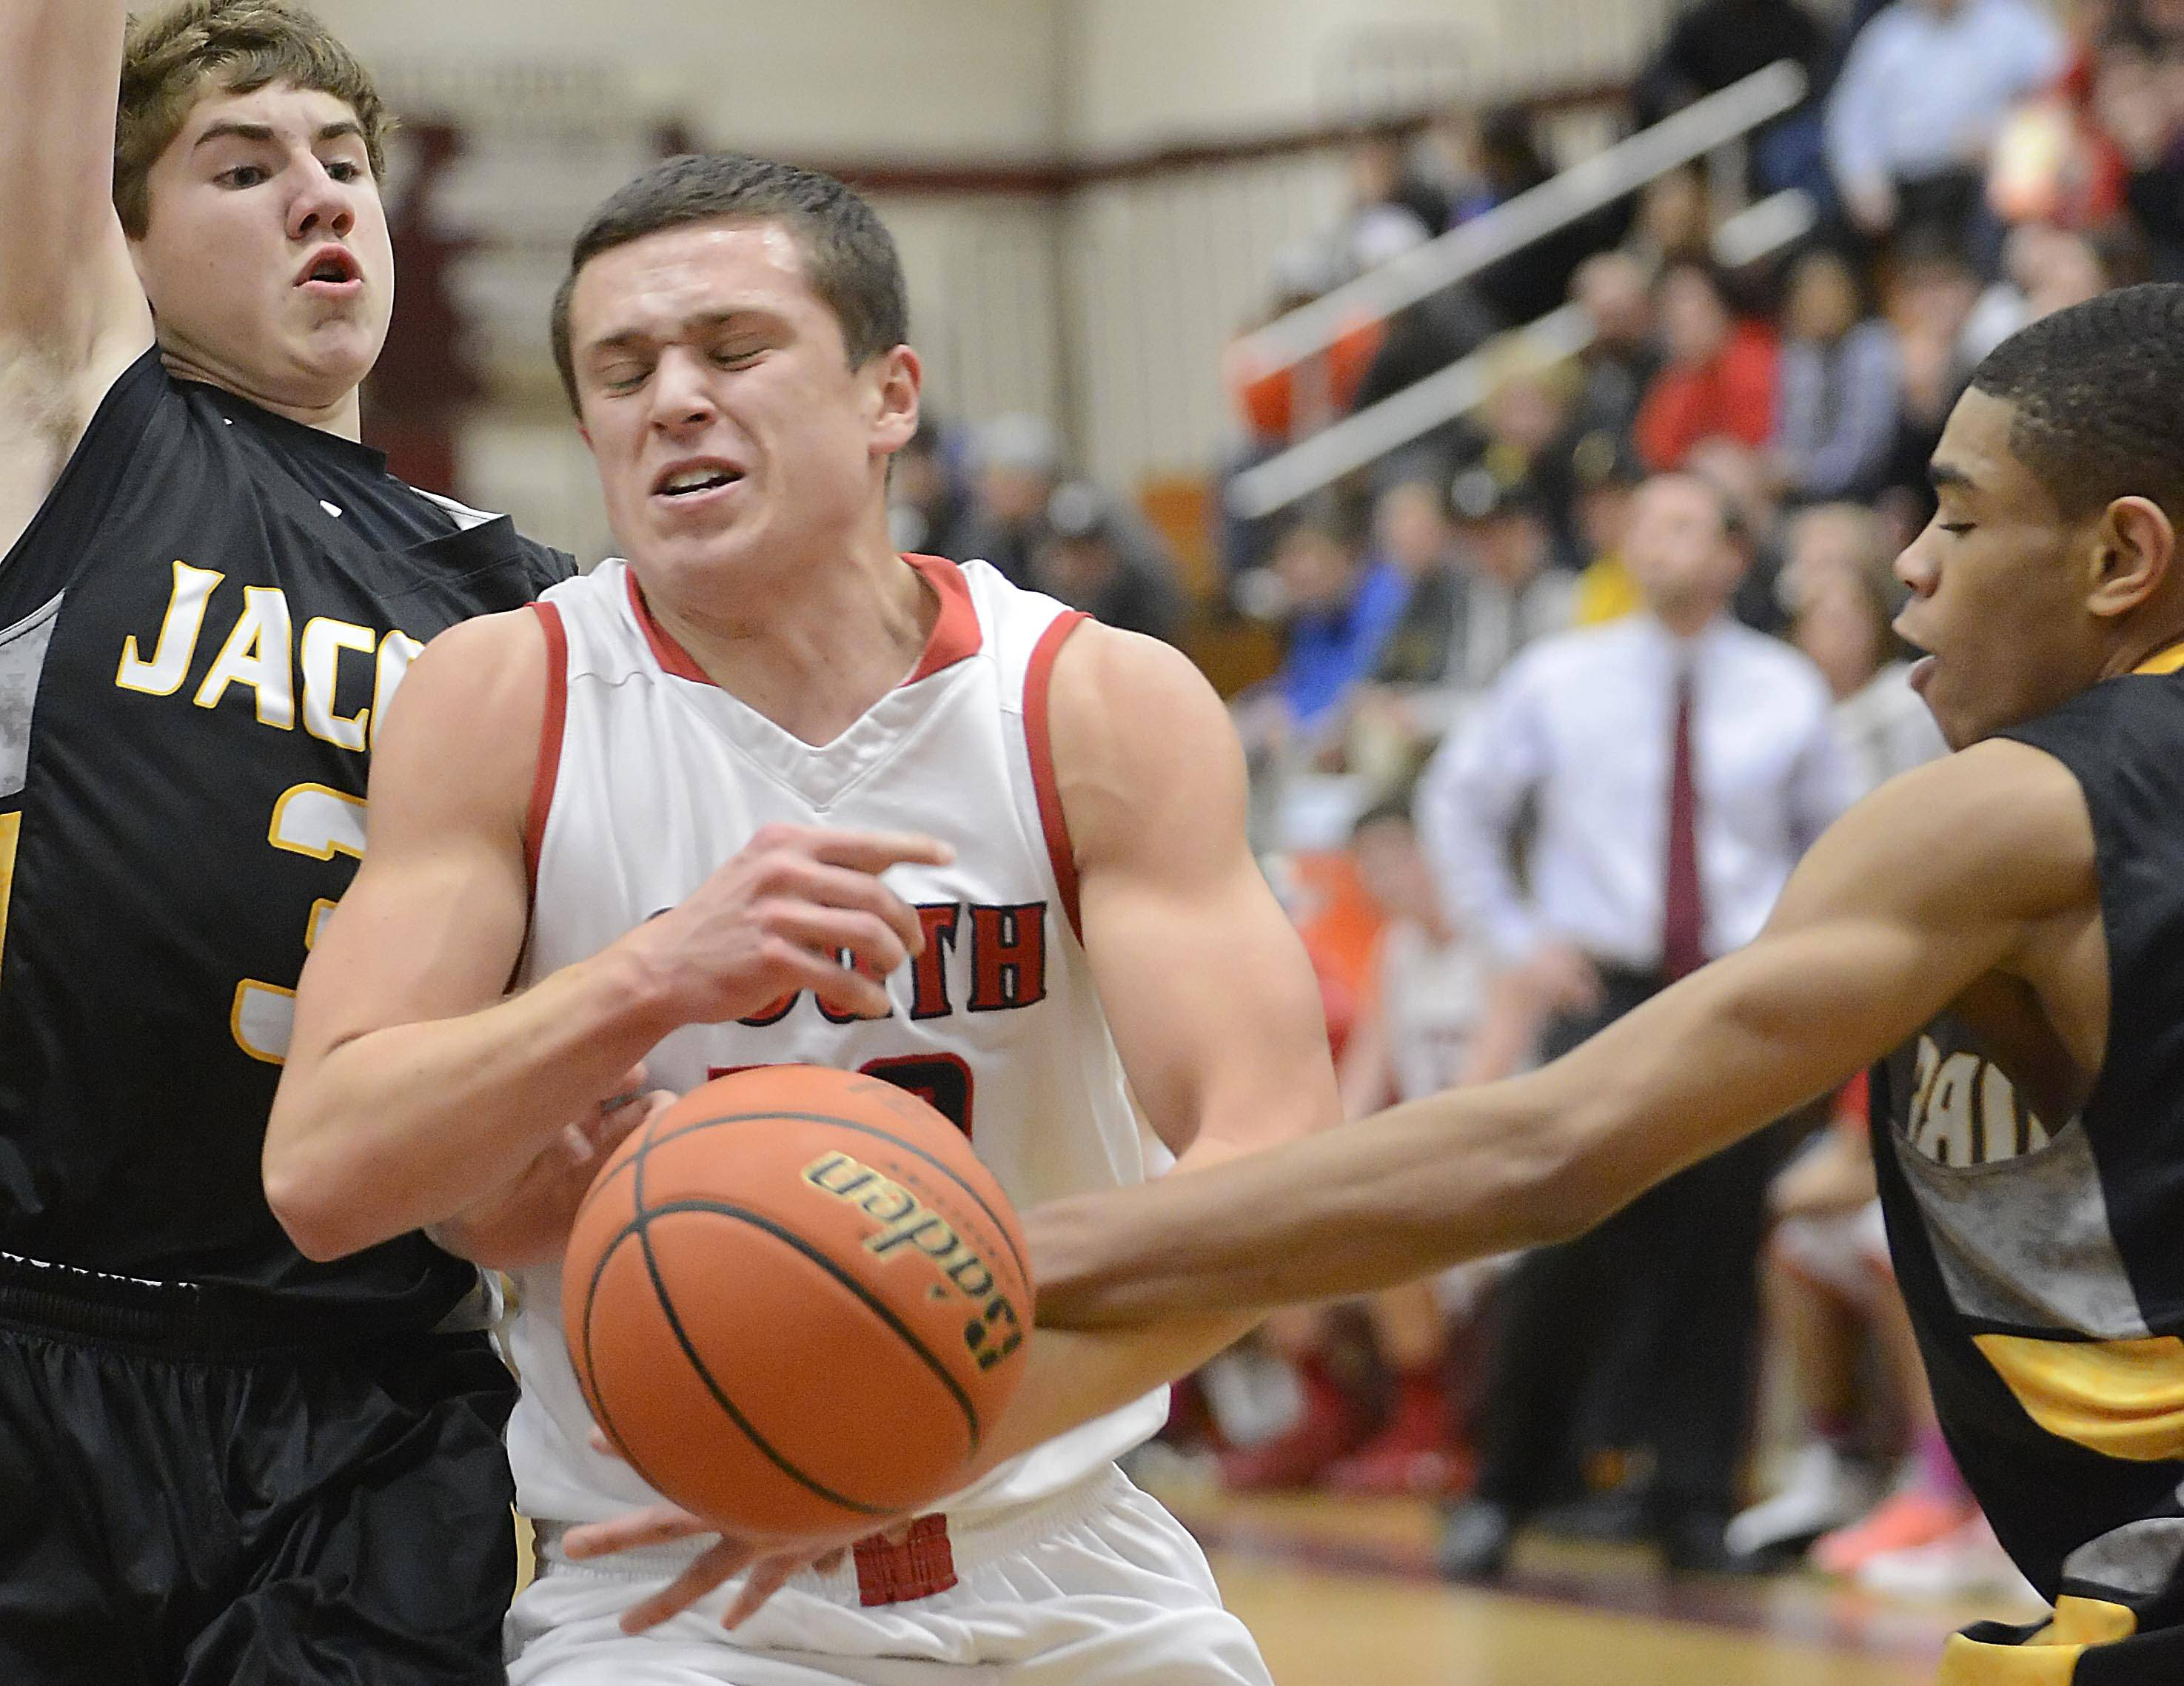 South Elgin's Matt McClure is fouled by Jacobs' Kenton Mack Wednesday in the Class 4A Elgin sectional semifinal.